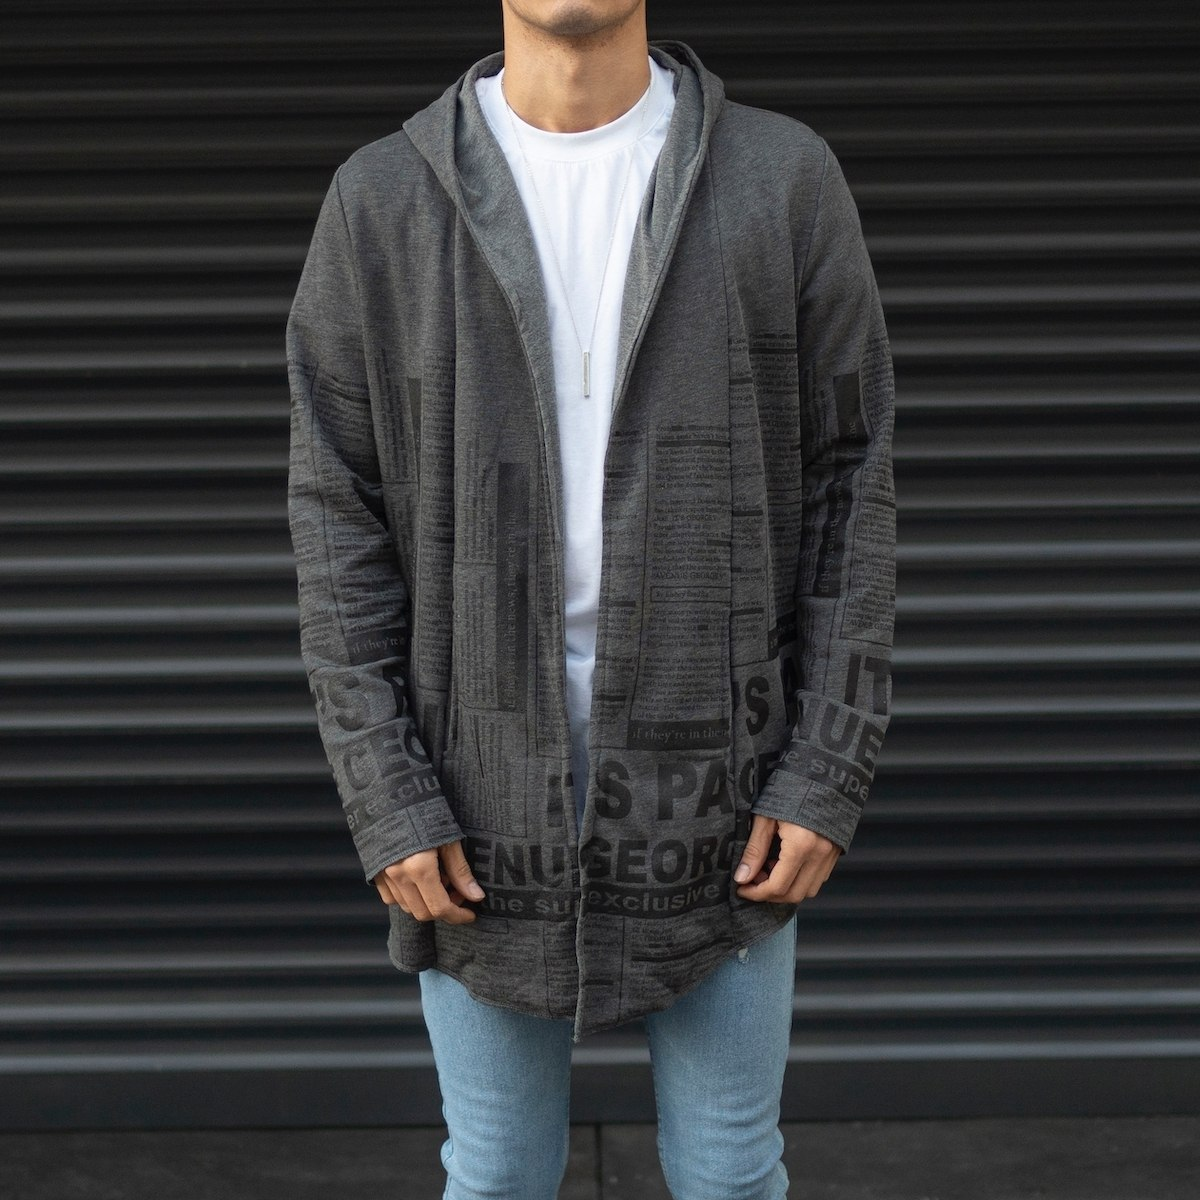 Men's Striped Hooded Cardigan With Text Detail In Fume